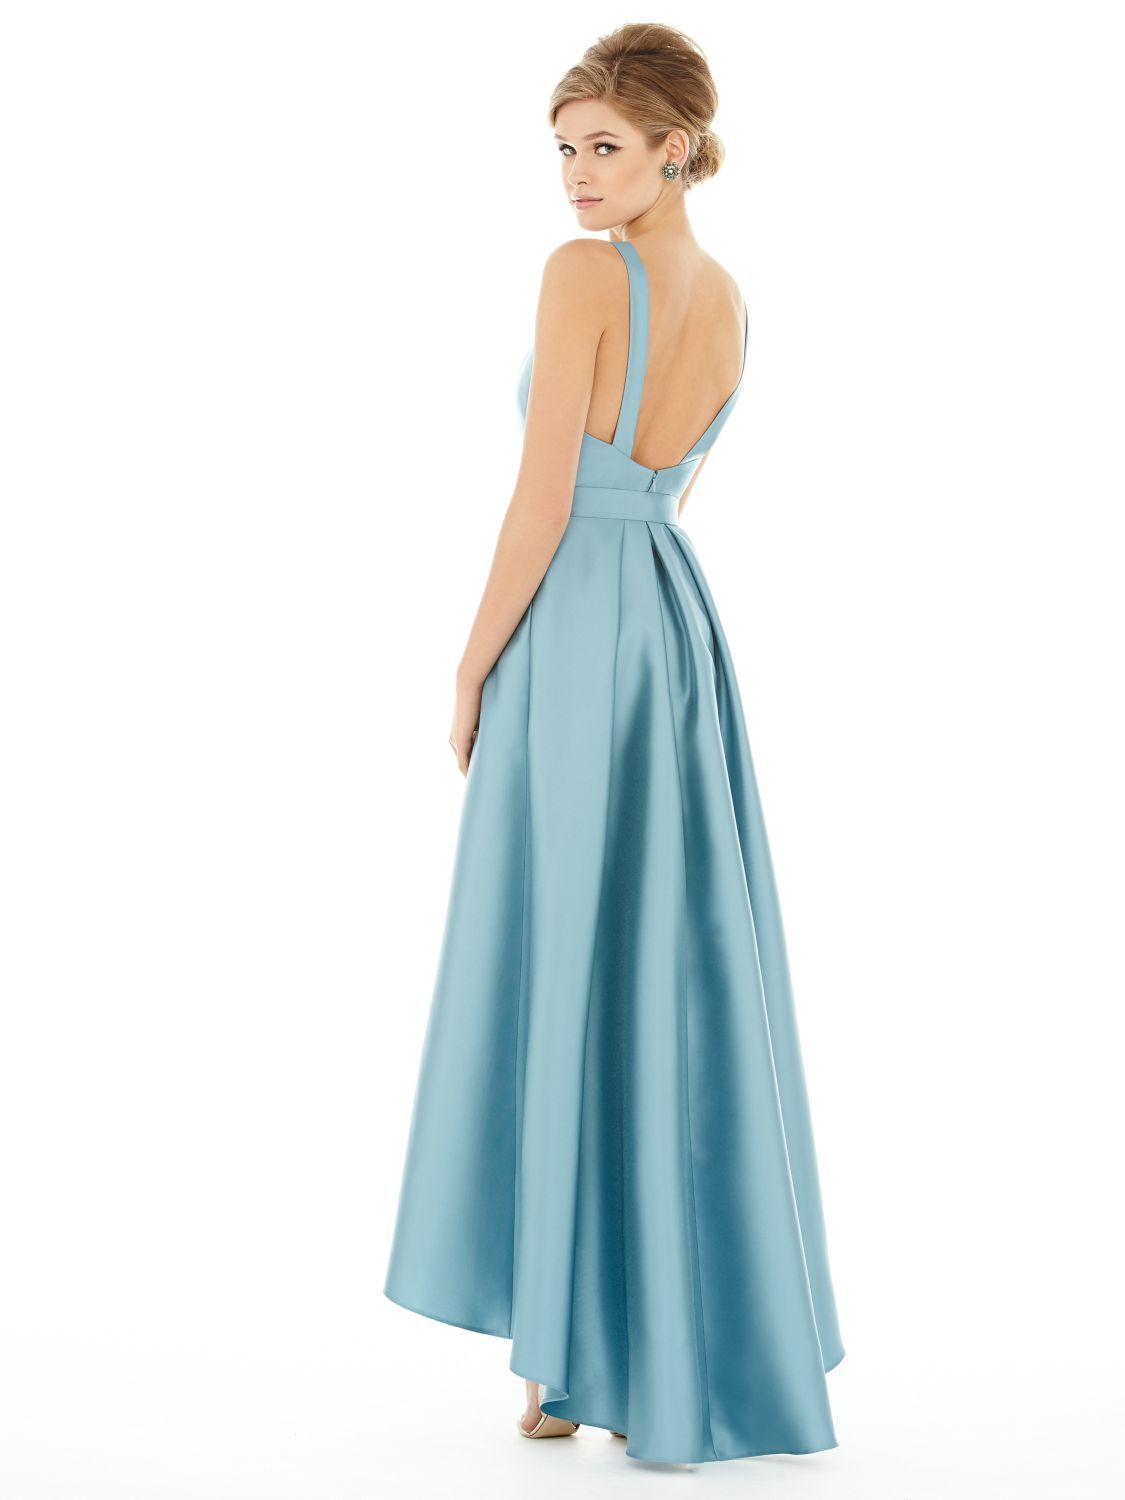 Alfred sung bridesmaids pinterest alfred sung alfred sung alfred sung alfred sung bridesmaidbirminghamdresses onlinebridesmaid ombrellifo Gallery